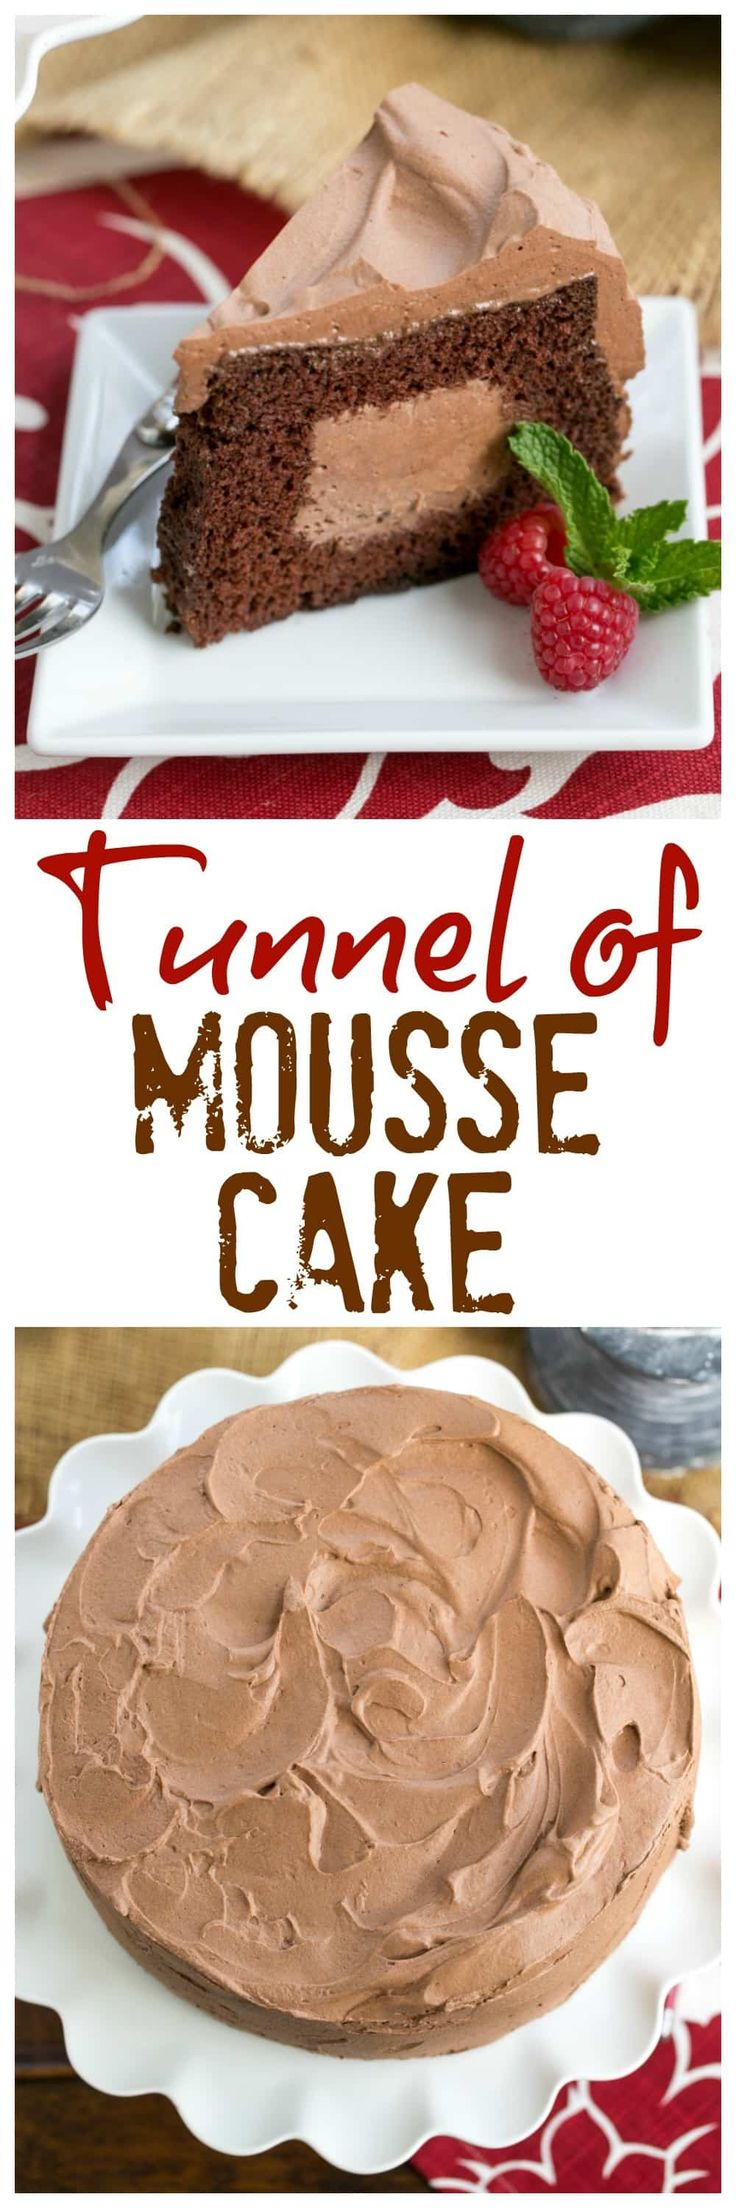 Tunnel of Mousse Cake | A fine crumb chocolate cake filled and frosting with a dreamy chocolate mousse! @lizzydo